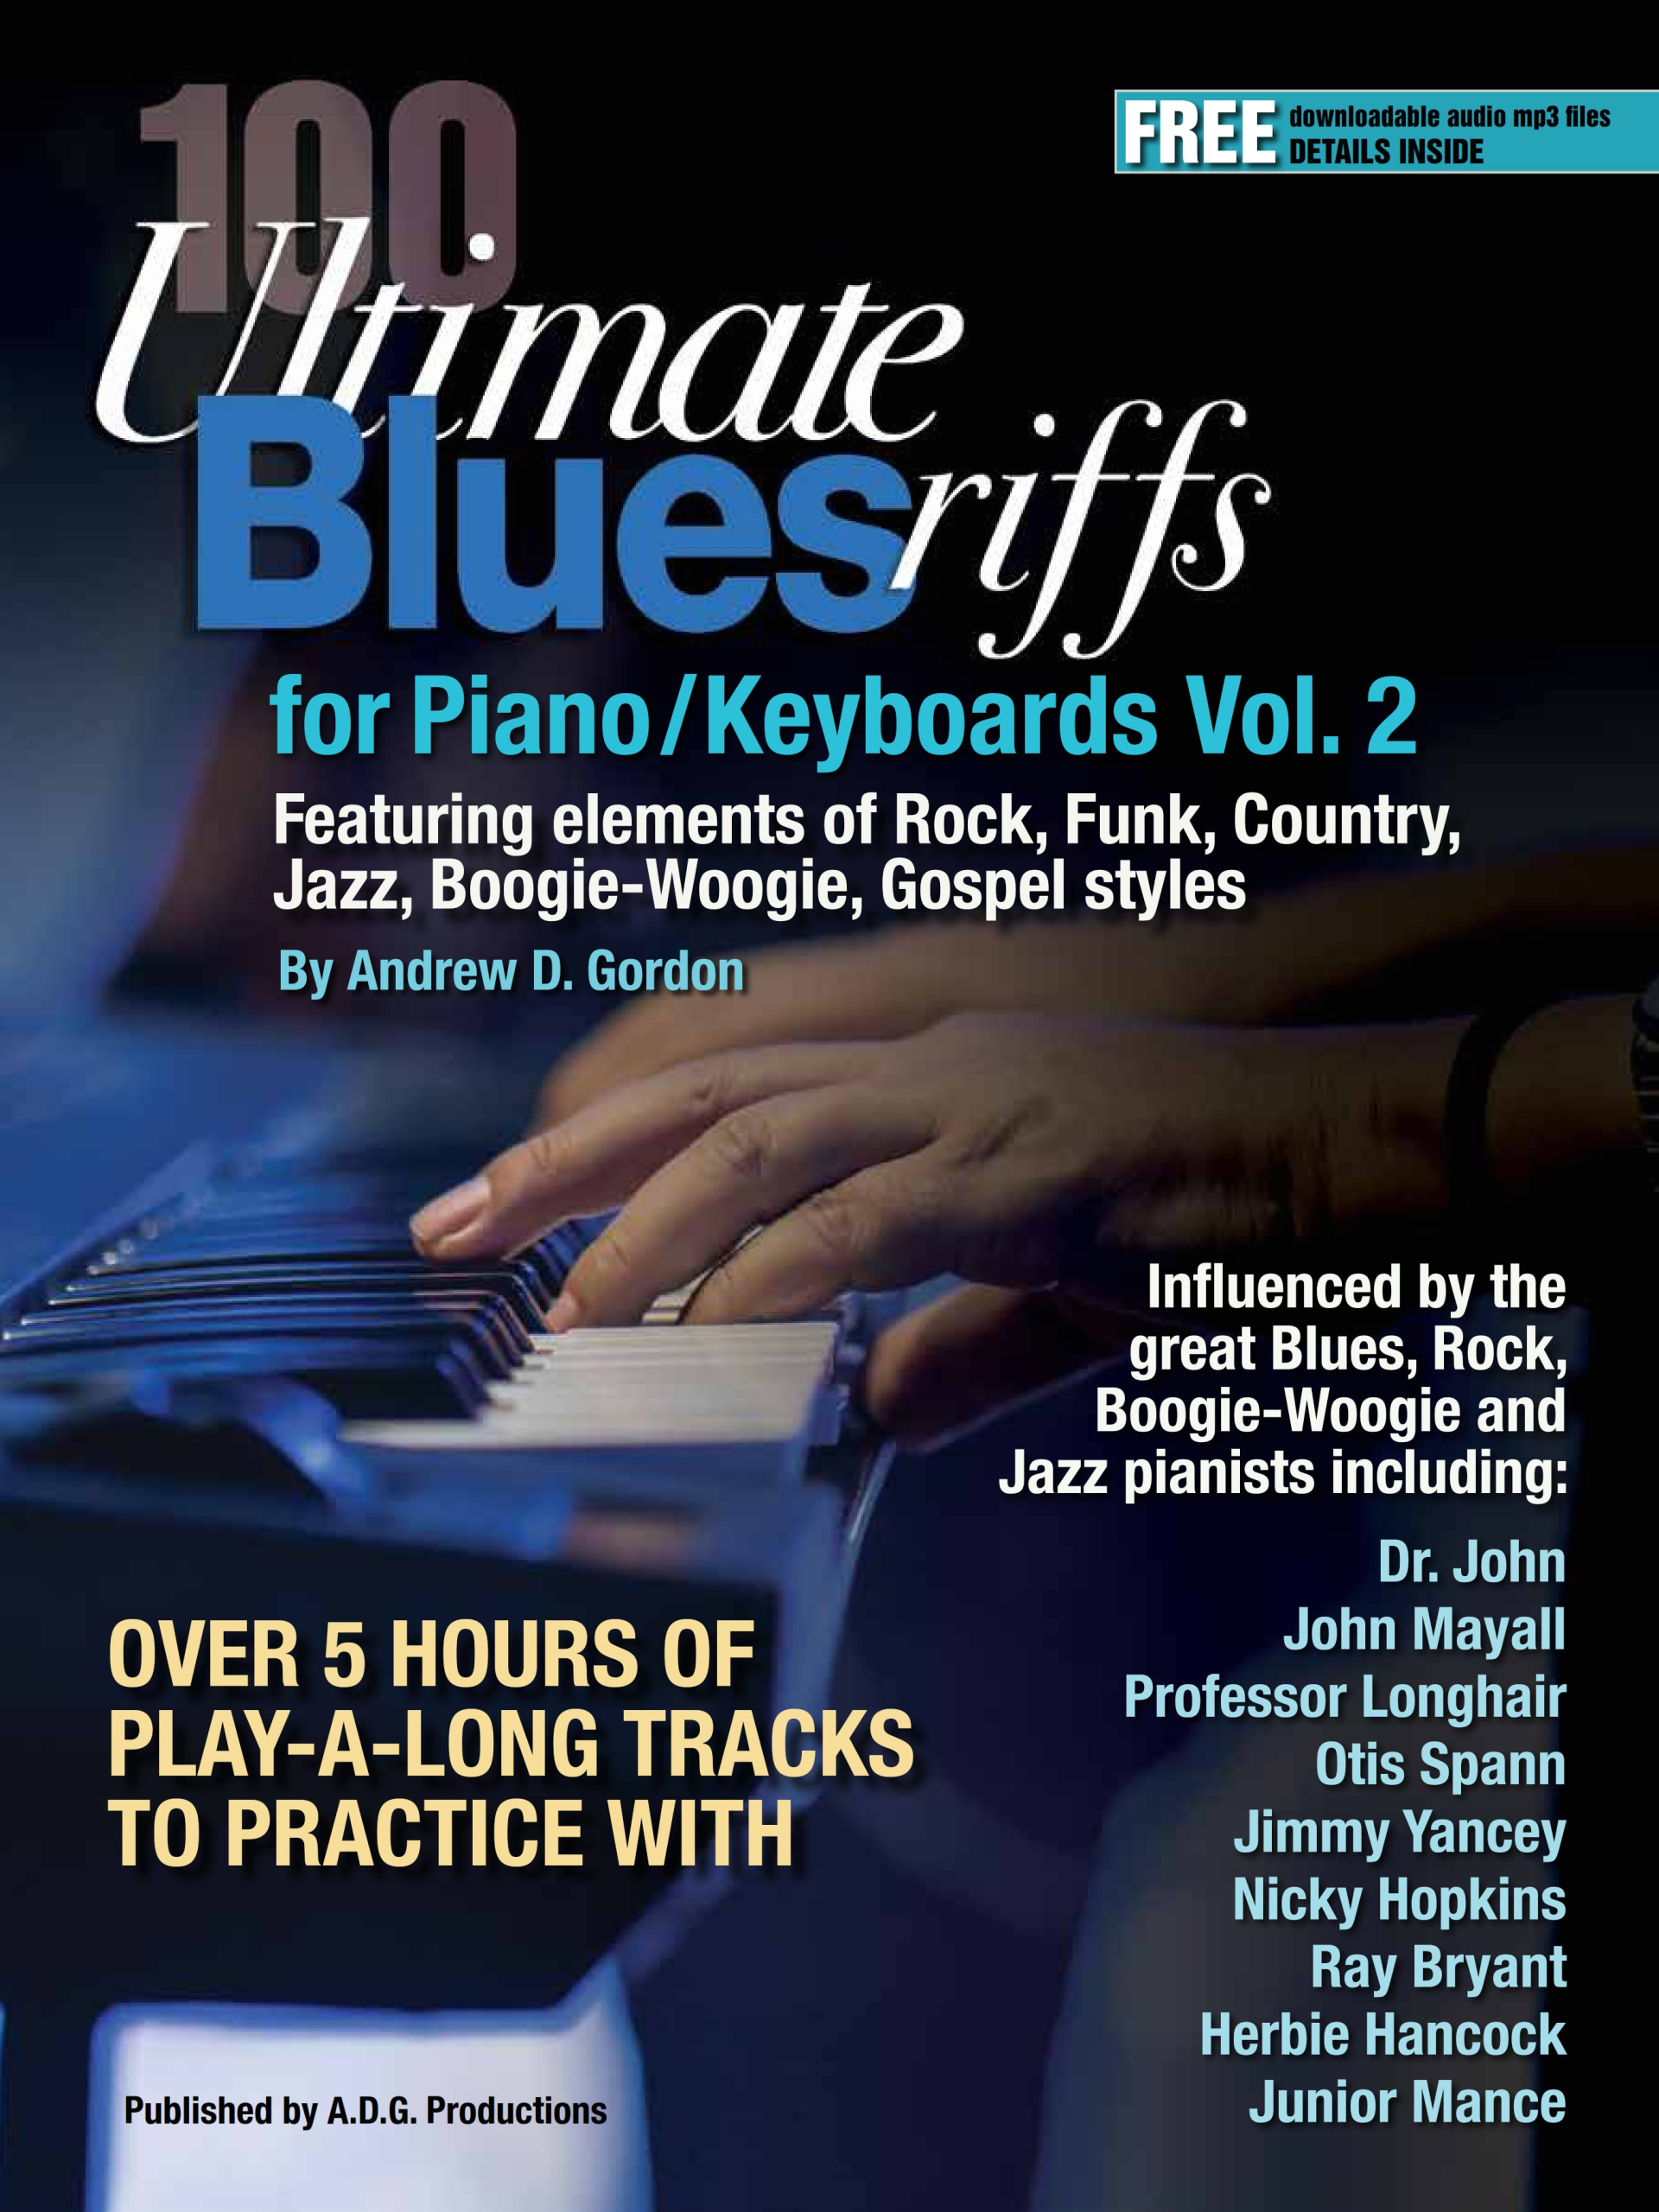 100 Ultimate Blues Riffs for Piano/Keyboards Volume 2 PDF/mp3 files  authored by Andrew D  Gordon